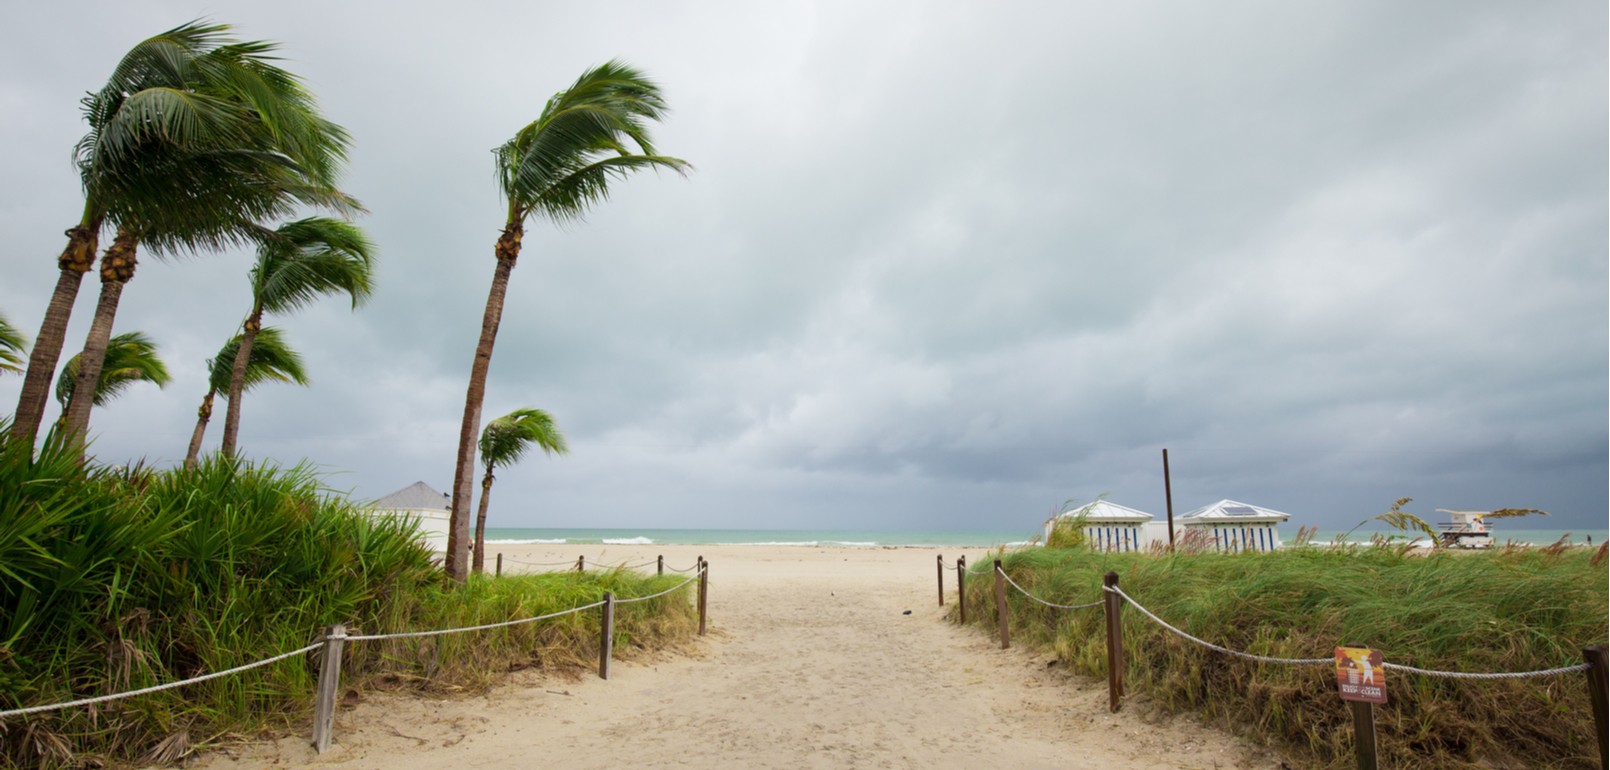 Hurricane preparedness for protecting your business IT